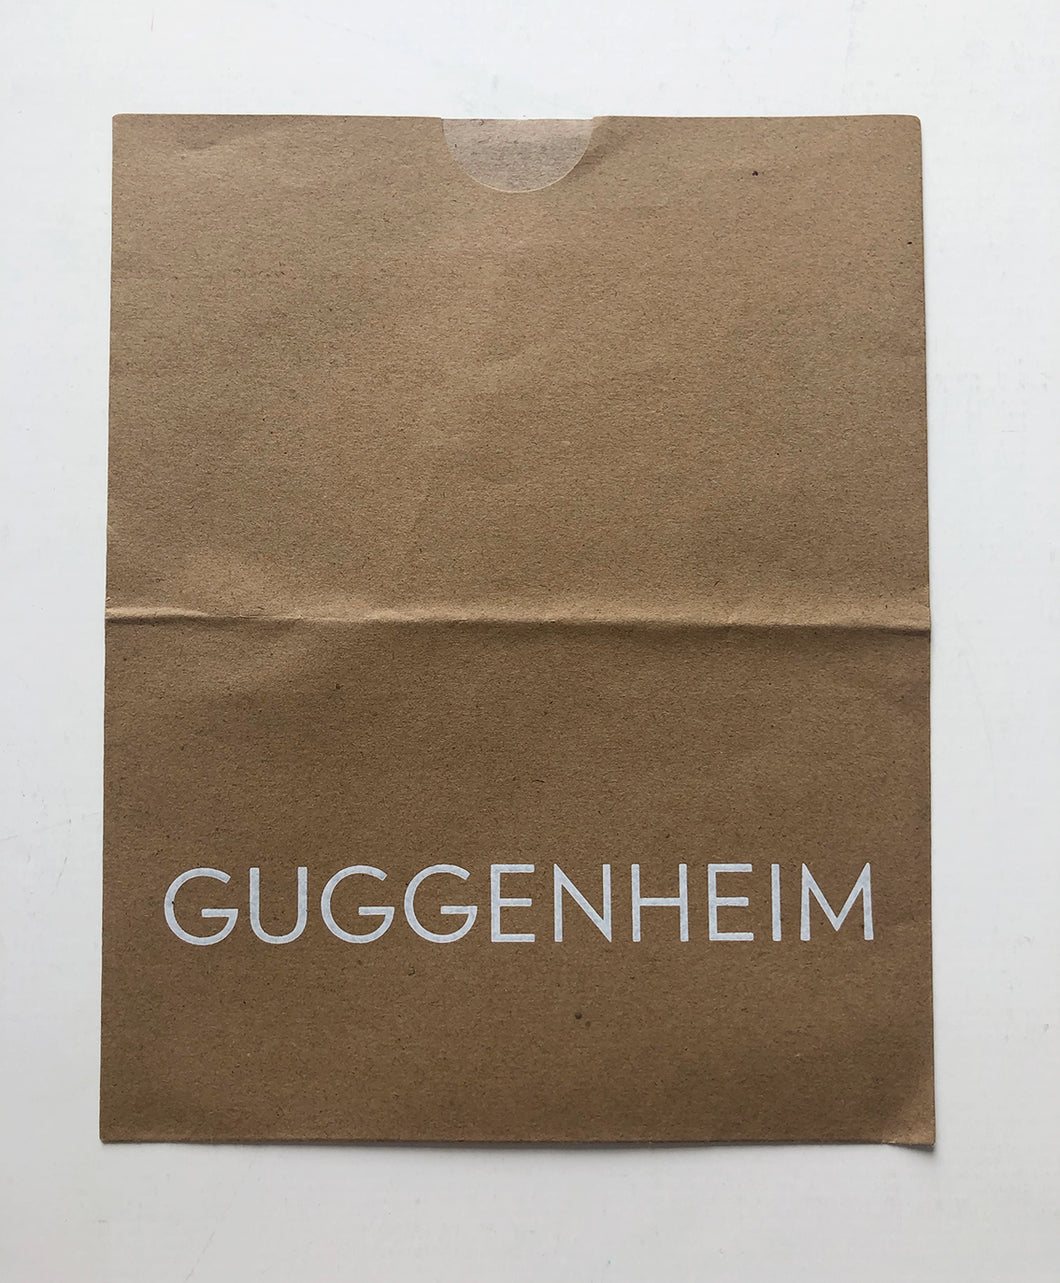 Guggenheim, NY - Brown paper bag